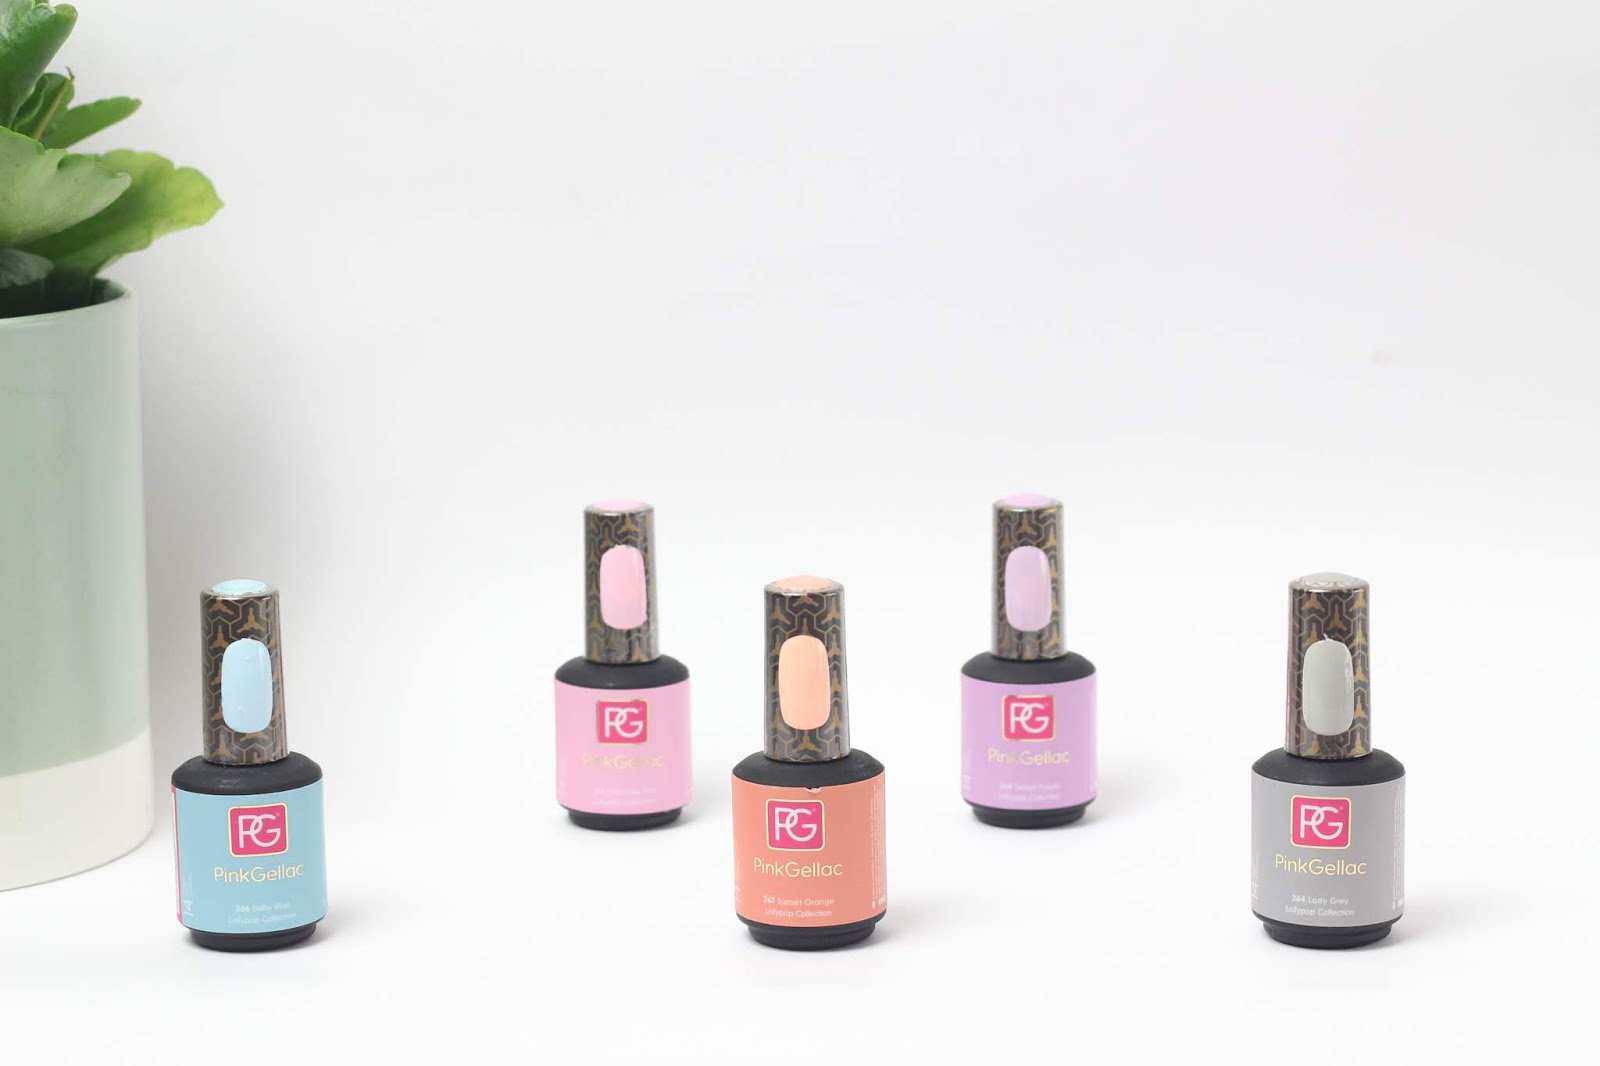 lollypop-collection-pink-gellac